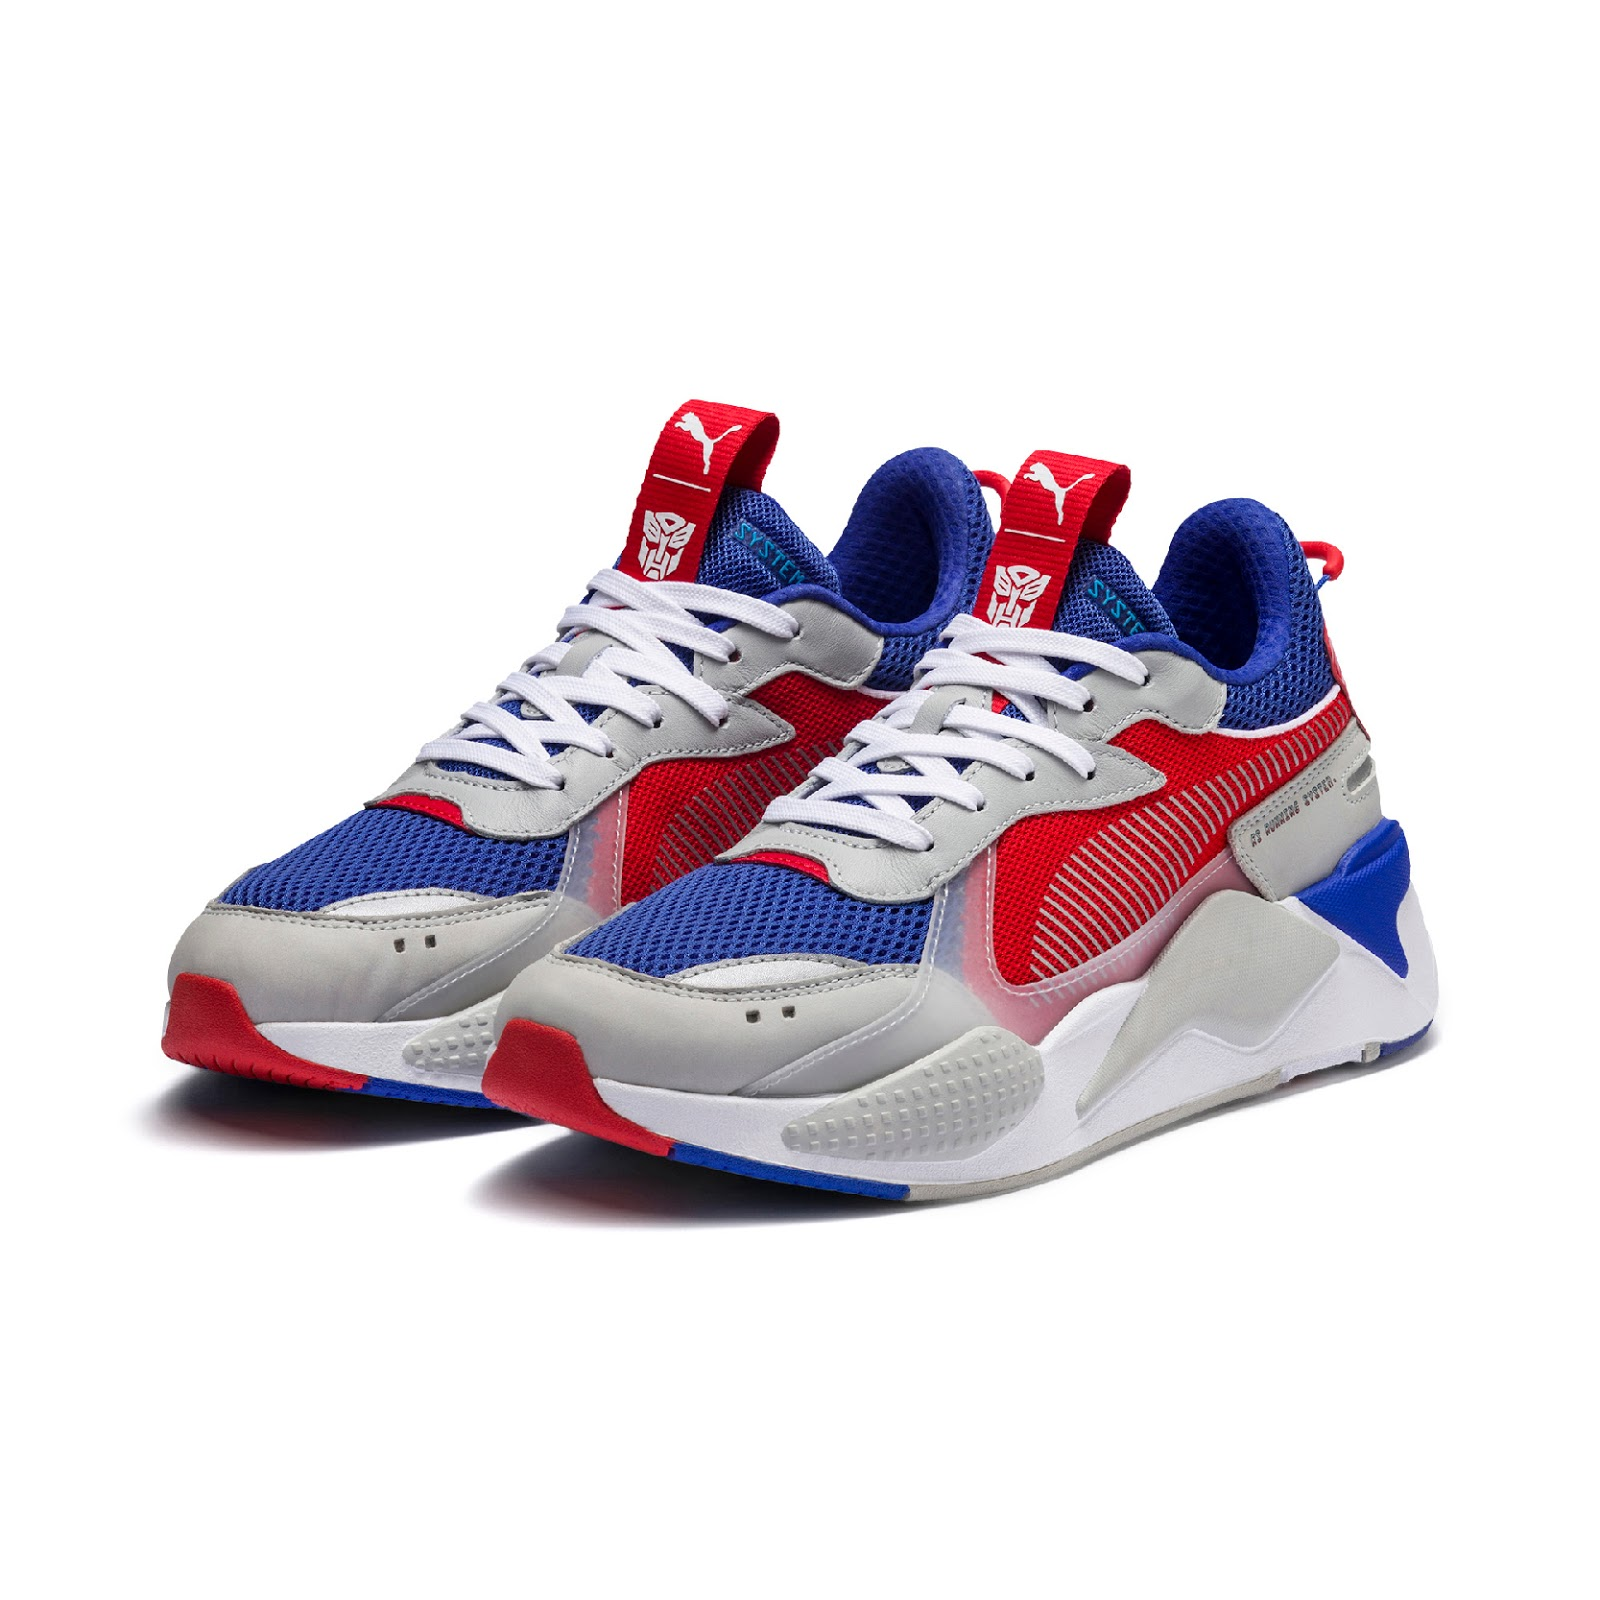 354d9f9348339b Global sports brand PUMA and Hasbro Inc. officially unveil the exclusive  Transformers-themed collection. Since first capturing our sci-fi  imagination in ...